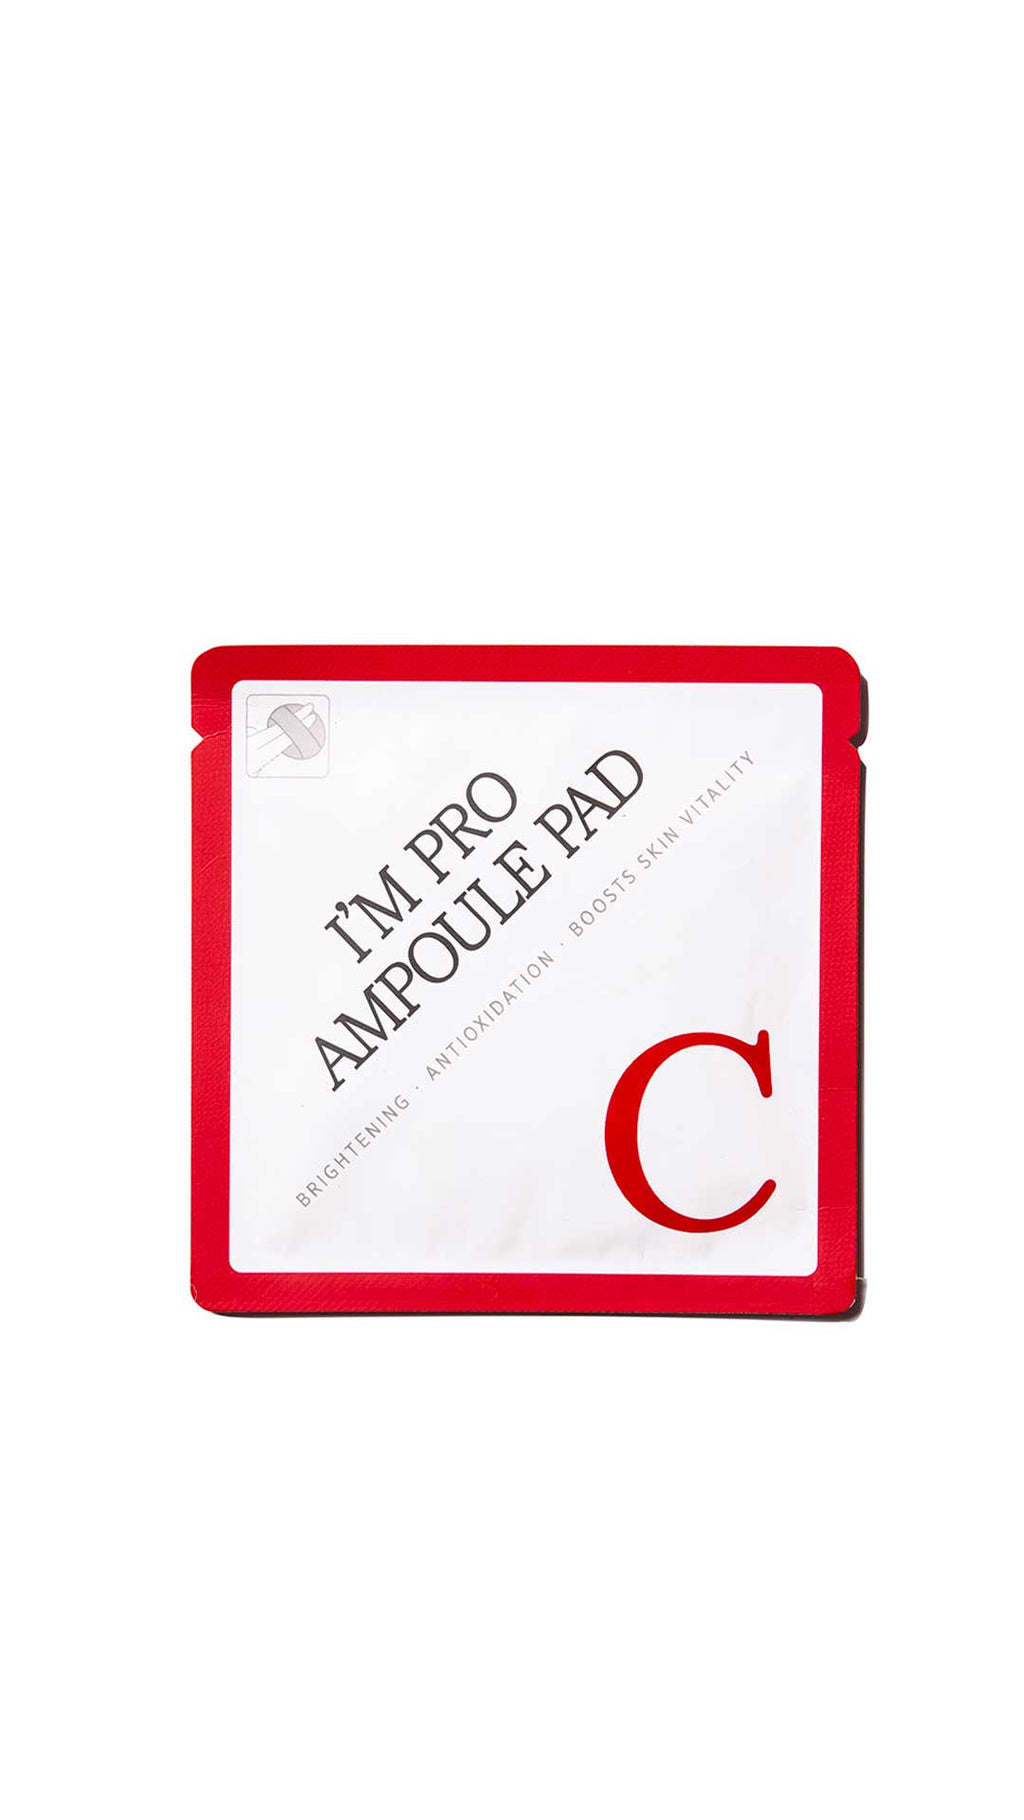 I'M PRO AMPOULE PAD C SINGLE-USE EXFOLIATING PAD WITH VITAMIN C